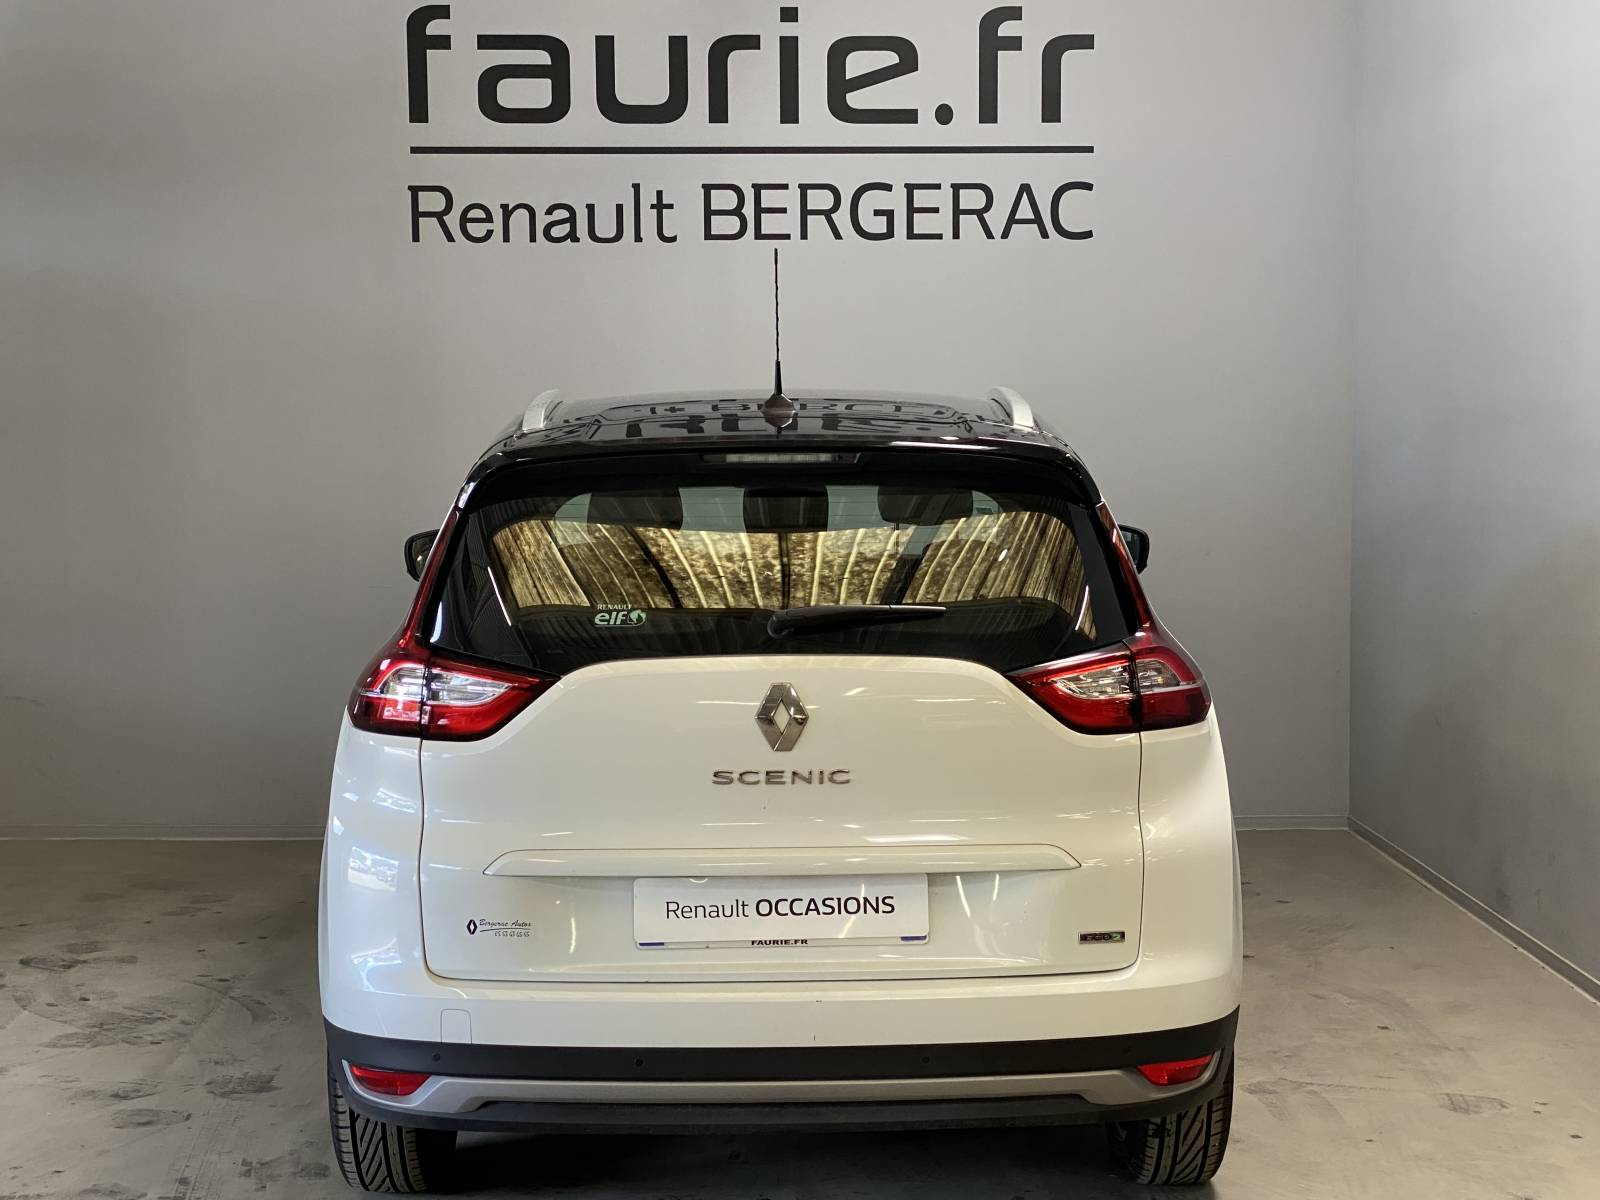 RENAULT Grand Scénic dCi 110 Energy EDC - véhicule d'occasion - Site Internet Faurie - Renault - Faurie Auto Bergerac - 24100 - Bergerac - 6